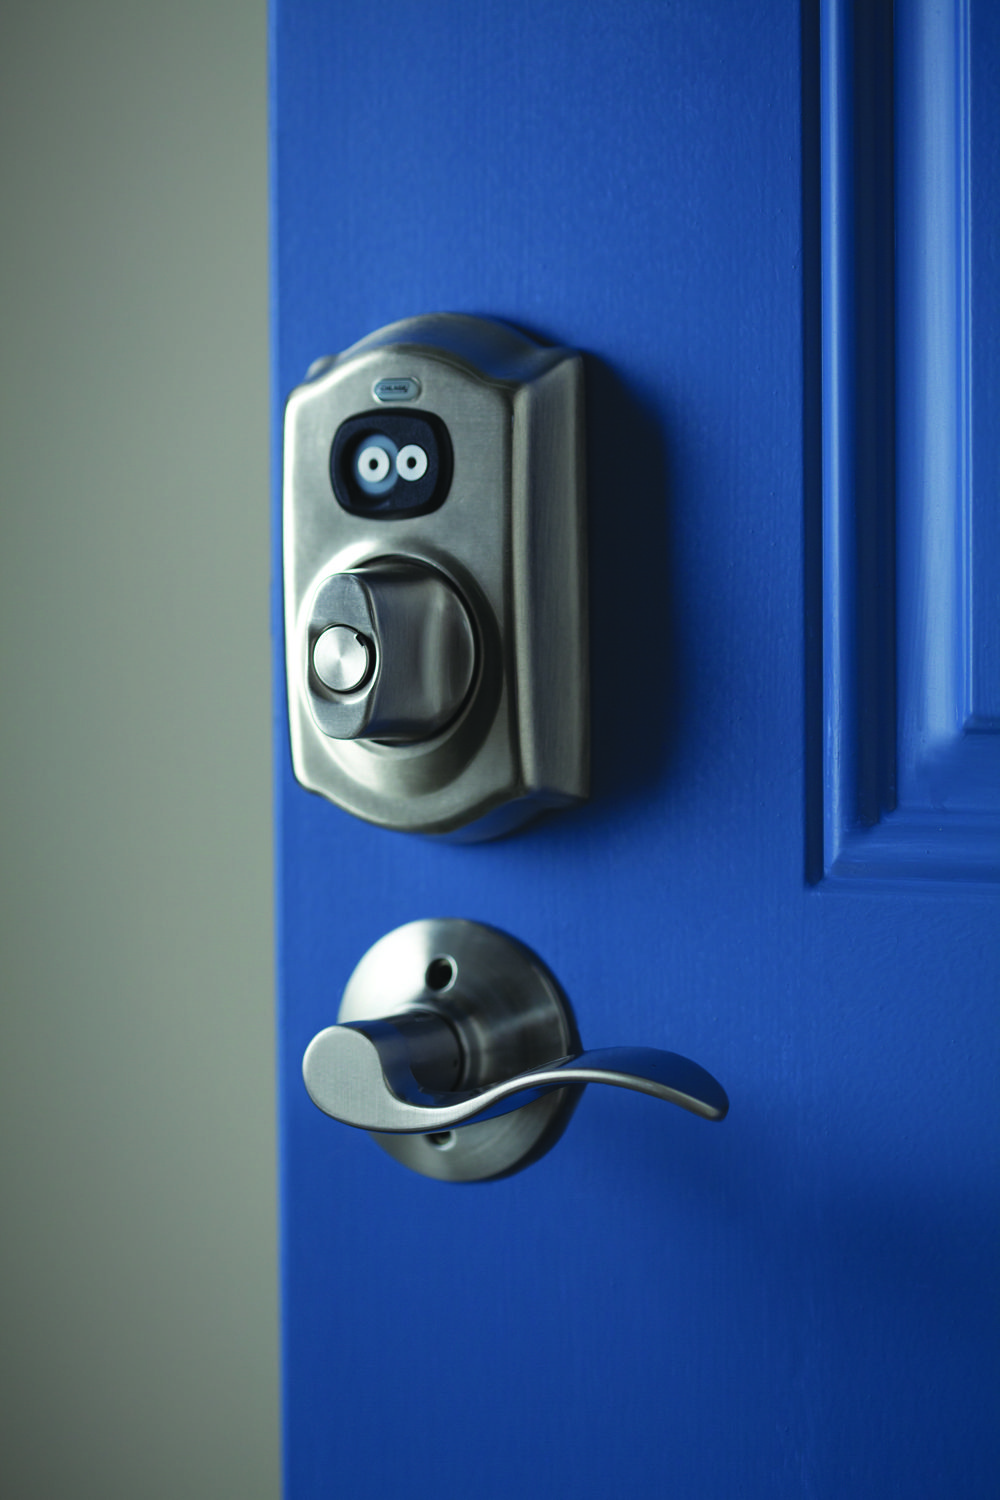 Be367 Programmable Electronic Deadbolt With A Camelot